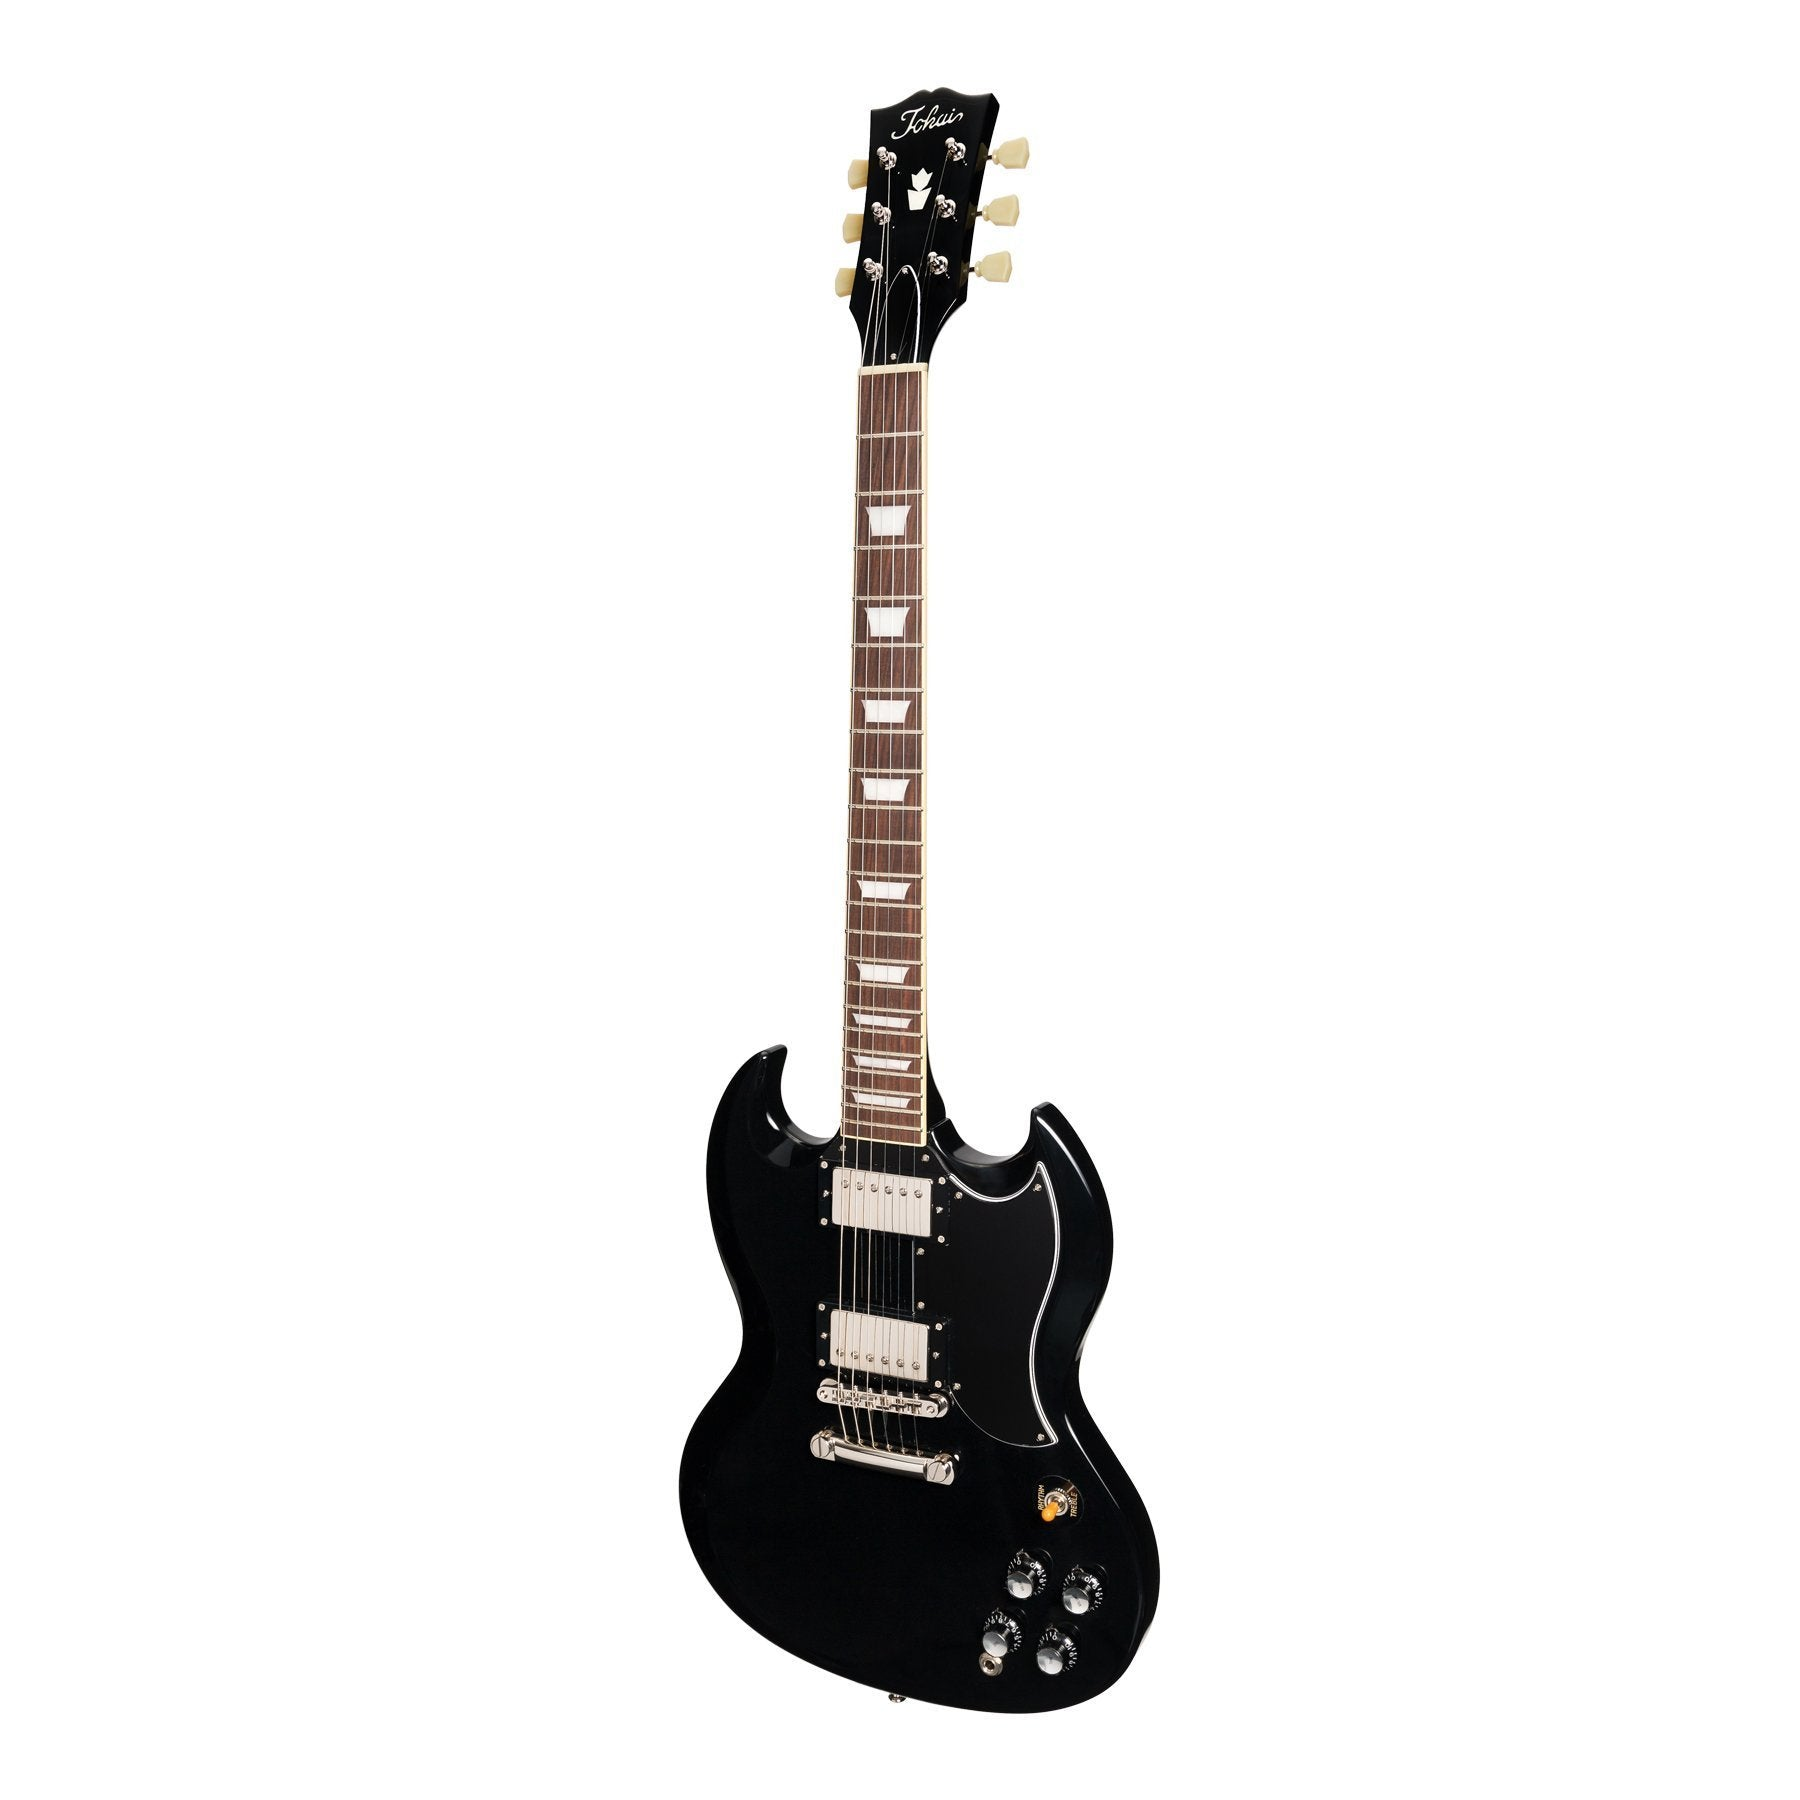 Tokai 'Vintage Series' SG-124 SG-Style Electric Guitar (Black)-SG-124-BB